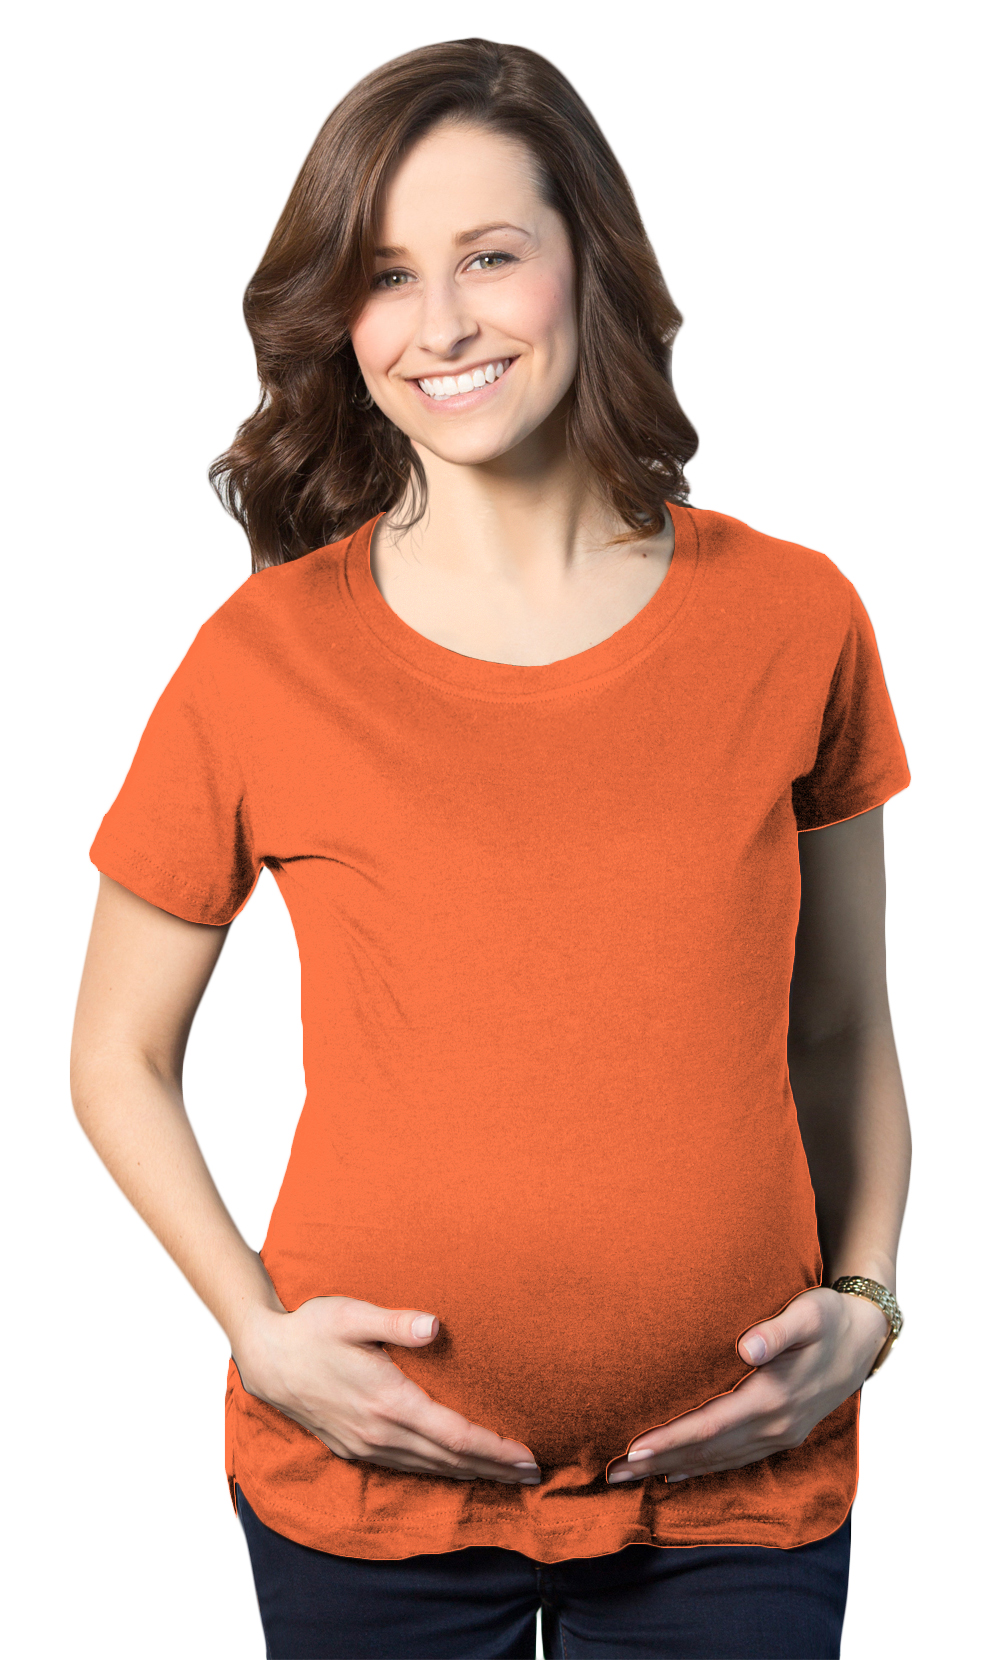 Cheap Maternity Shirts Blank Pregnancy Shirts Plain I'm ...